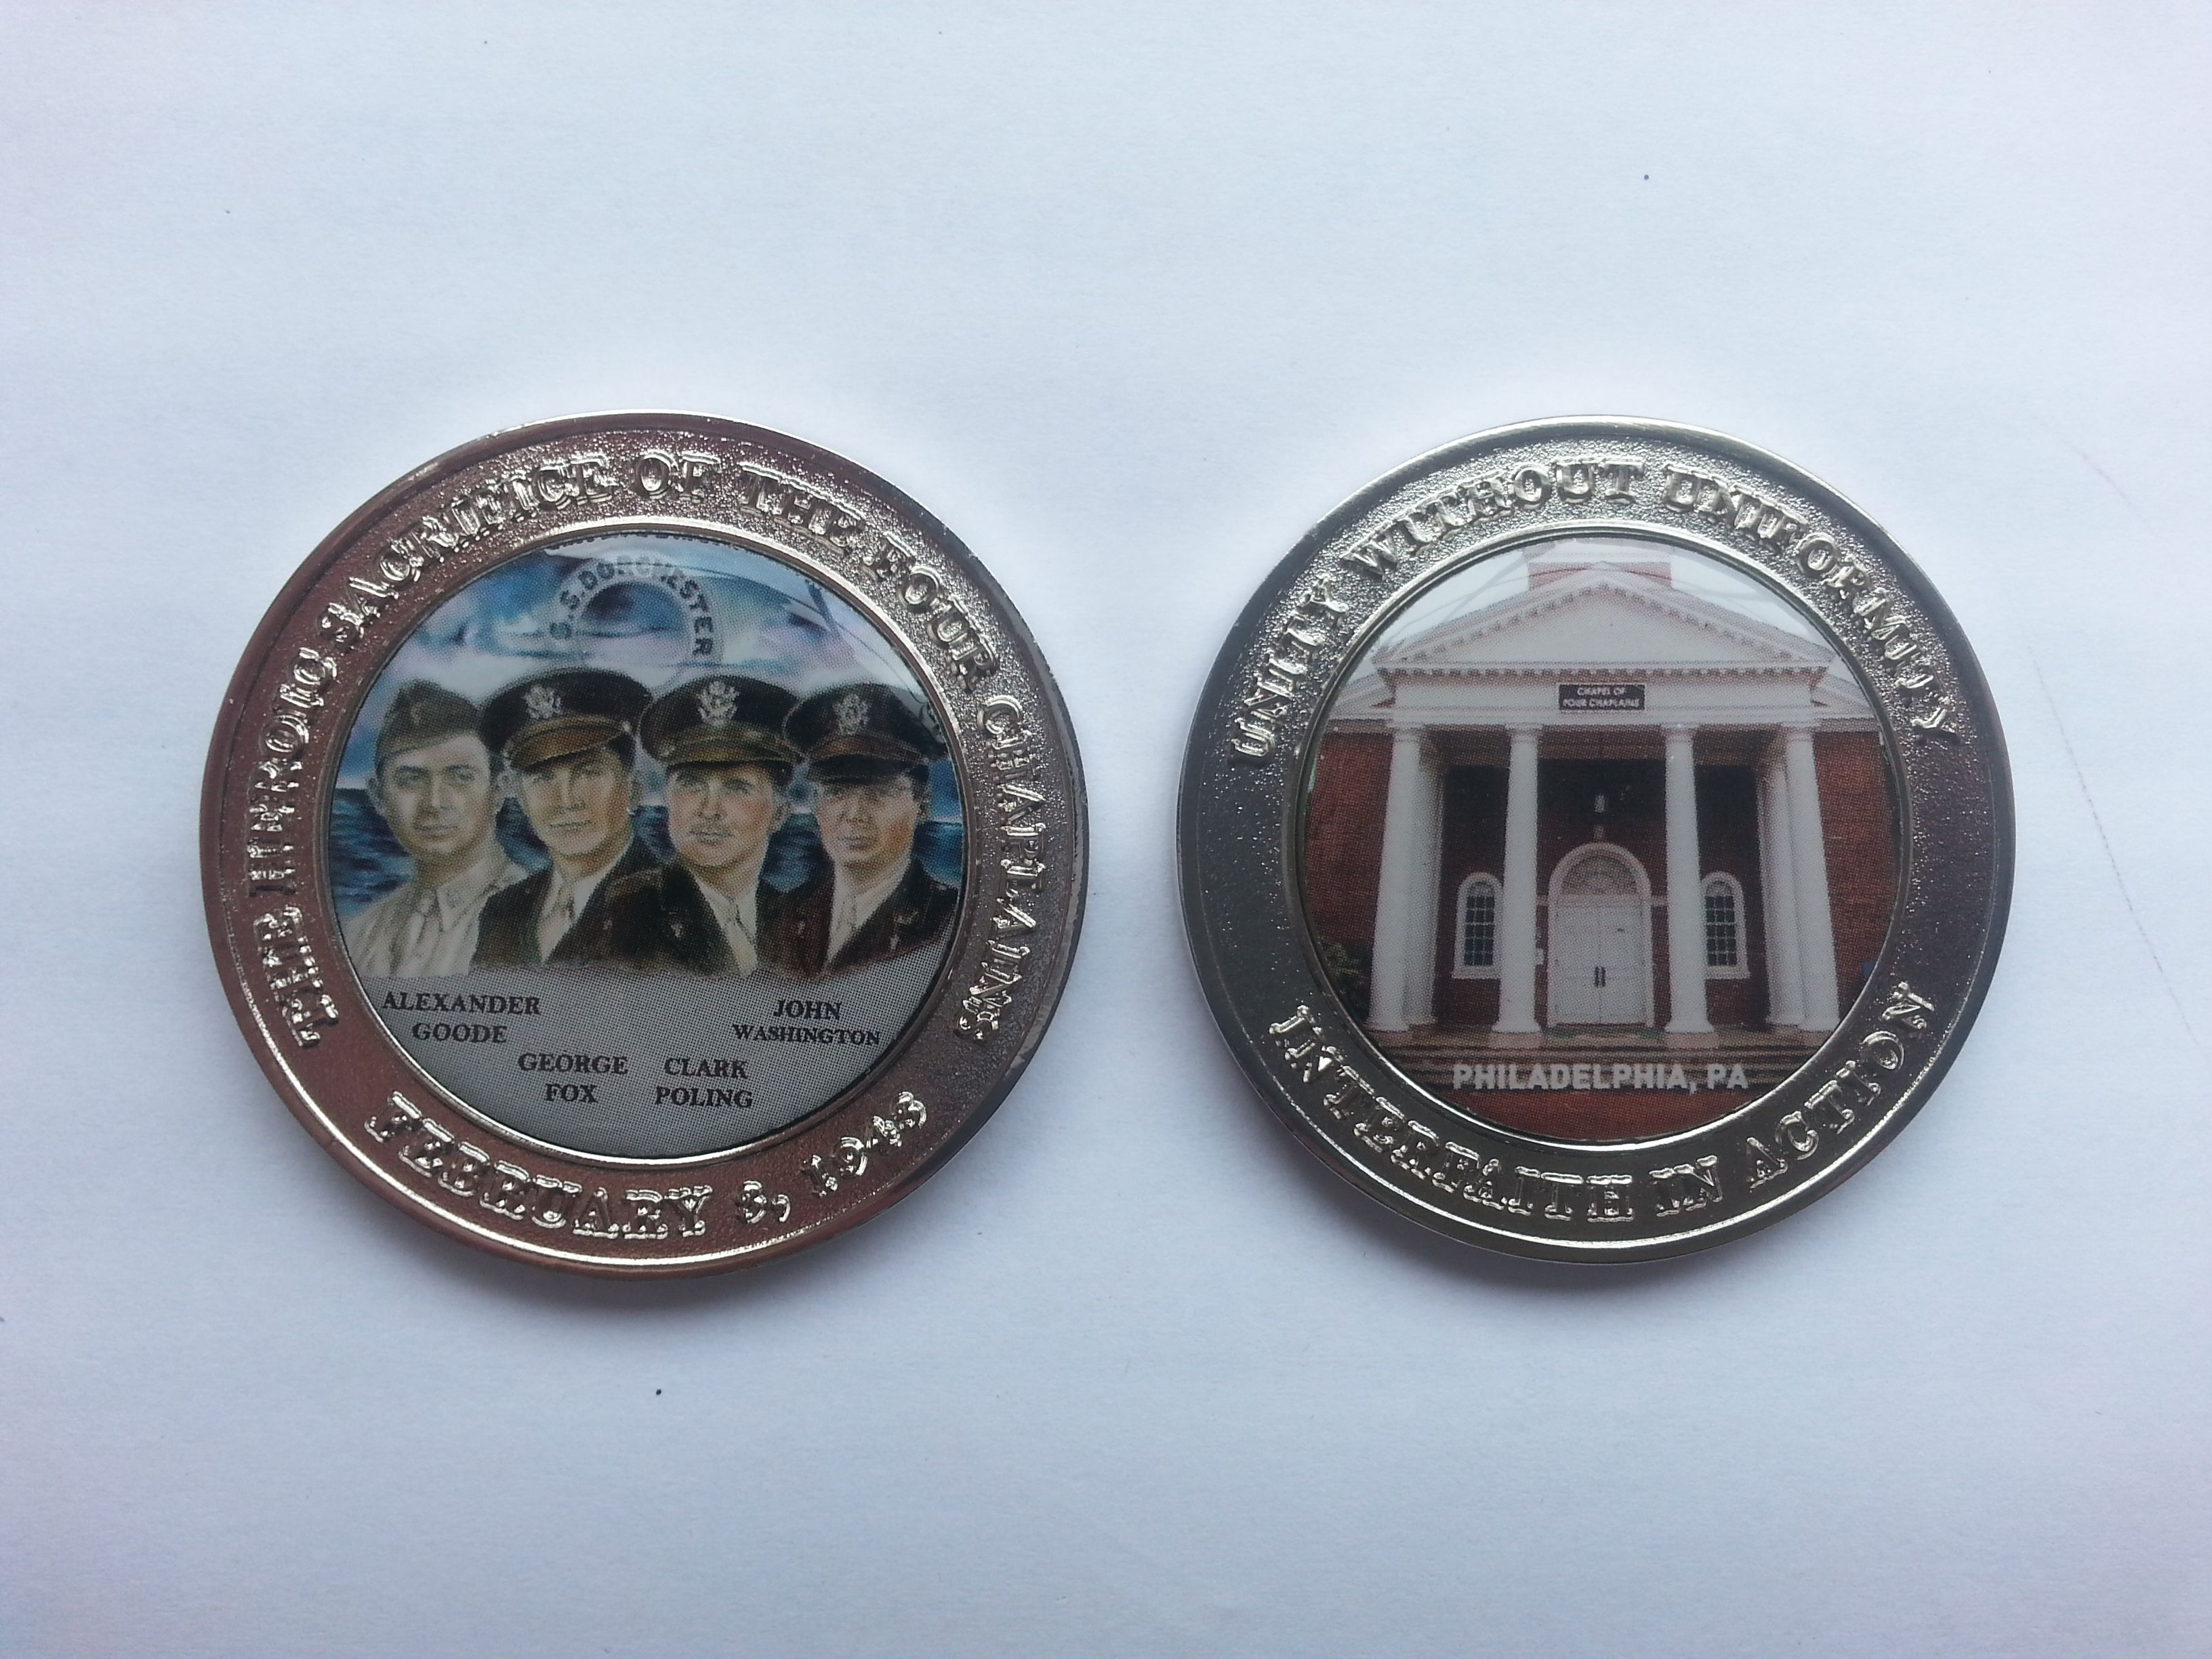 Four Chaplains Challenge Coin - available for sale $20 each